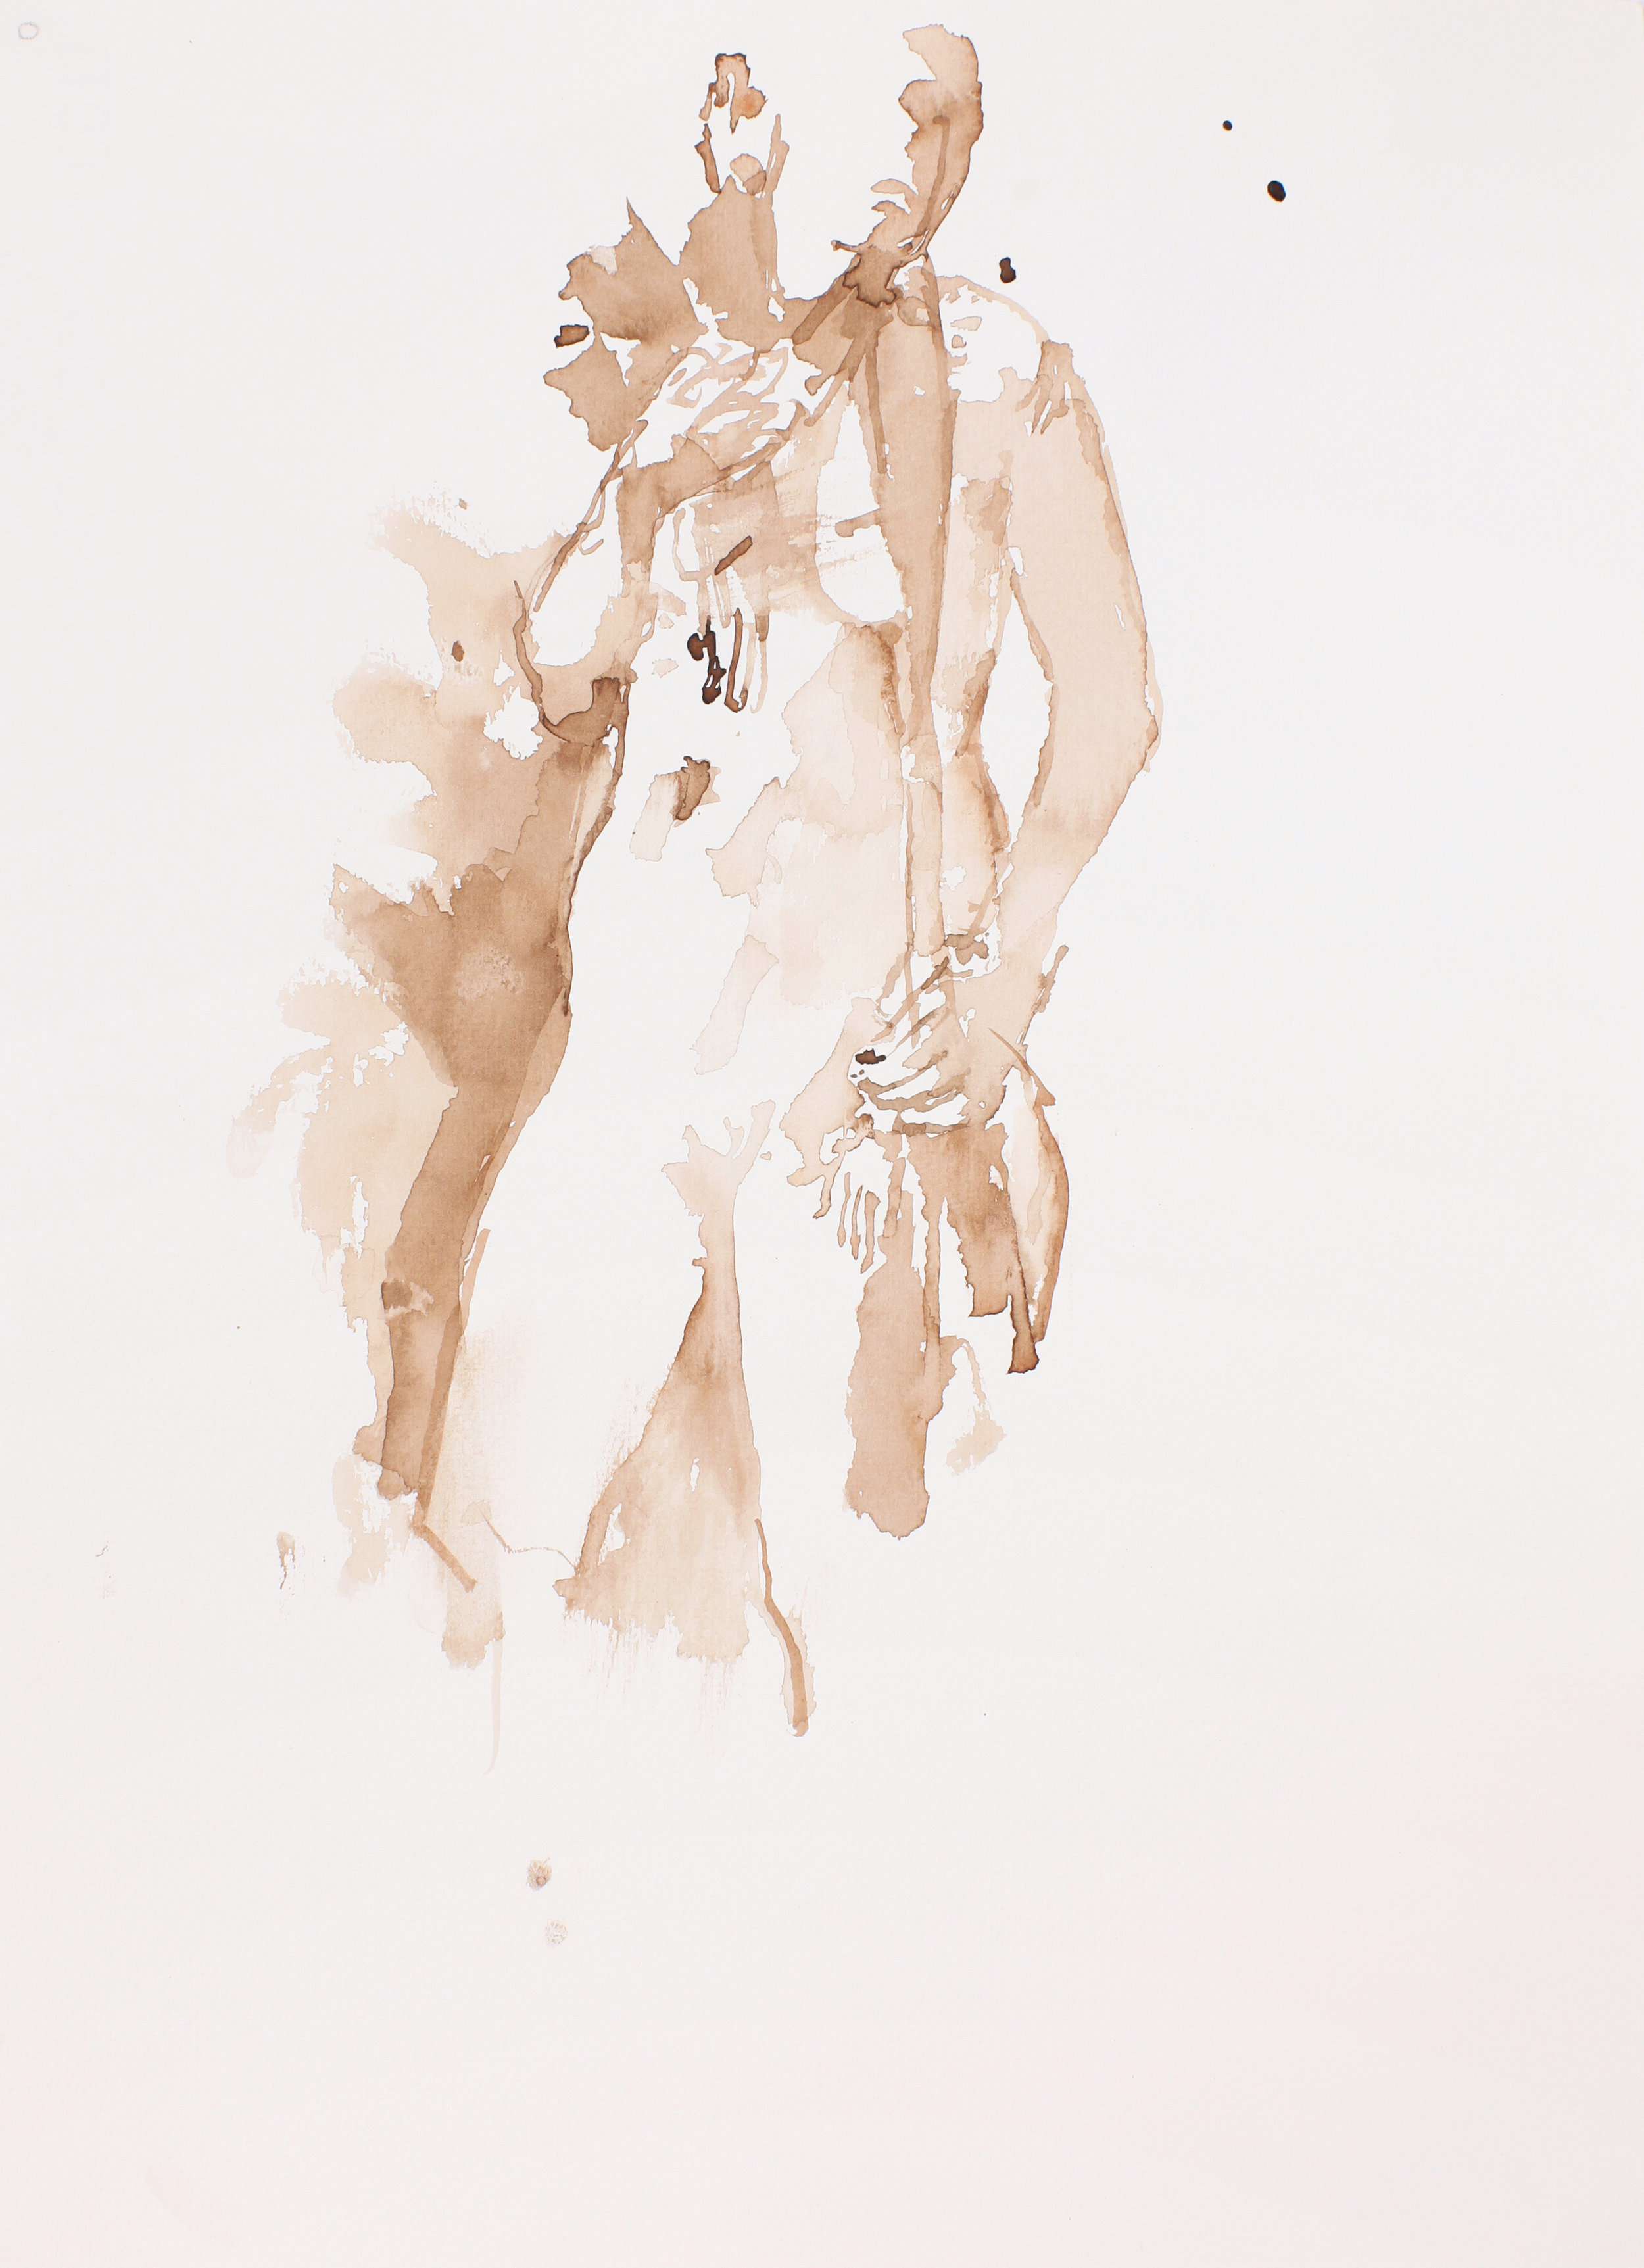 2005_Nude_Figure_Study_For_Orpheus_watercolour_on_paper_15x11in_38x28cm_WPF127.jpg